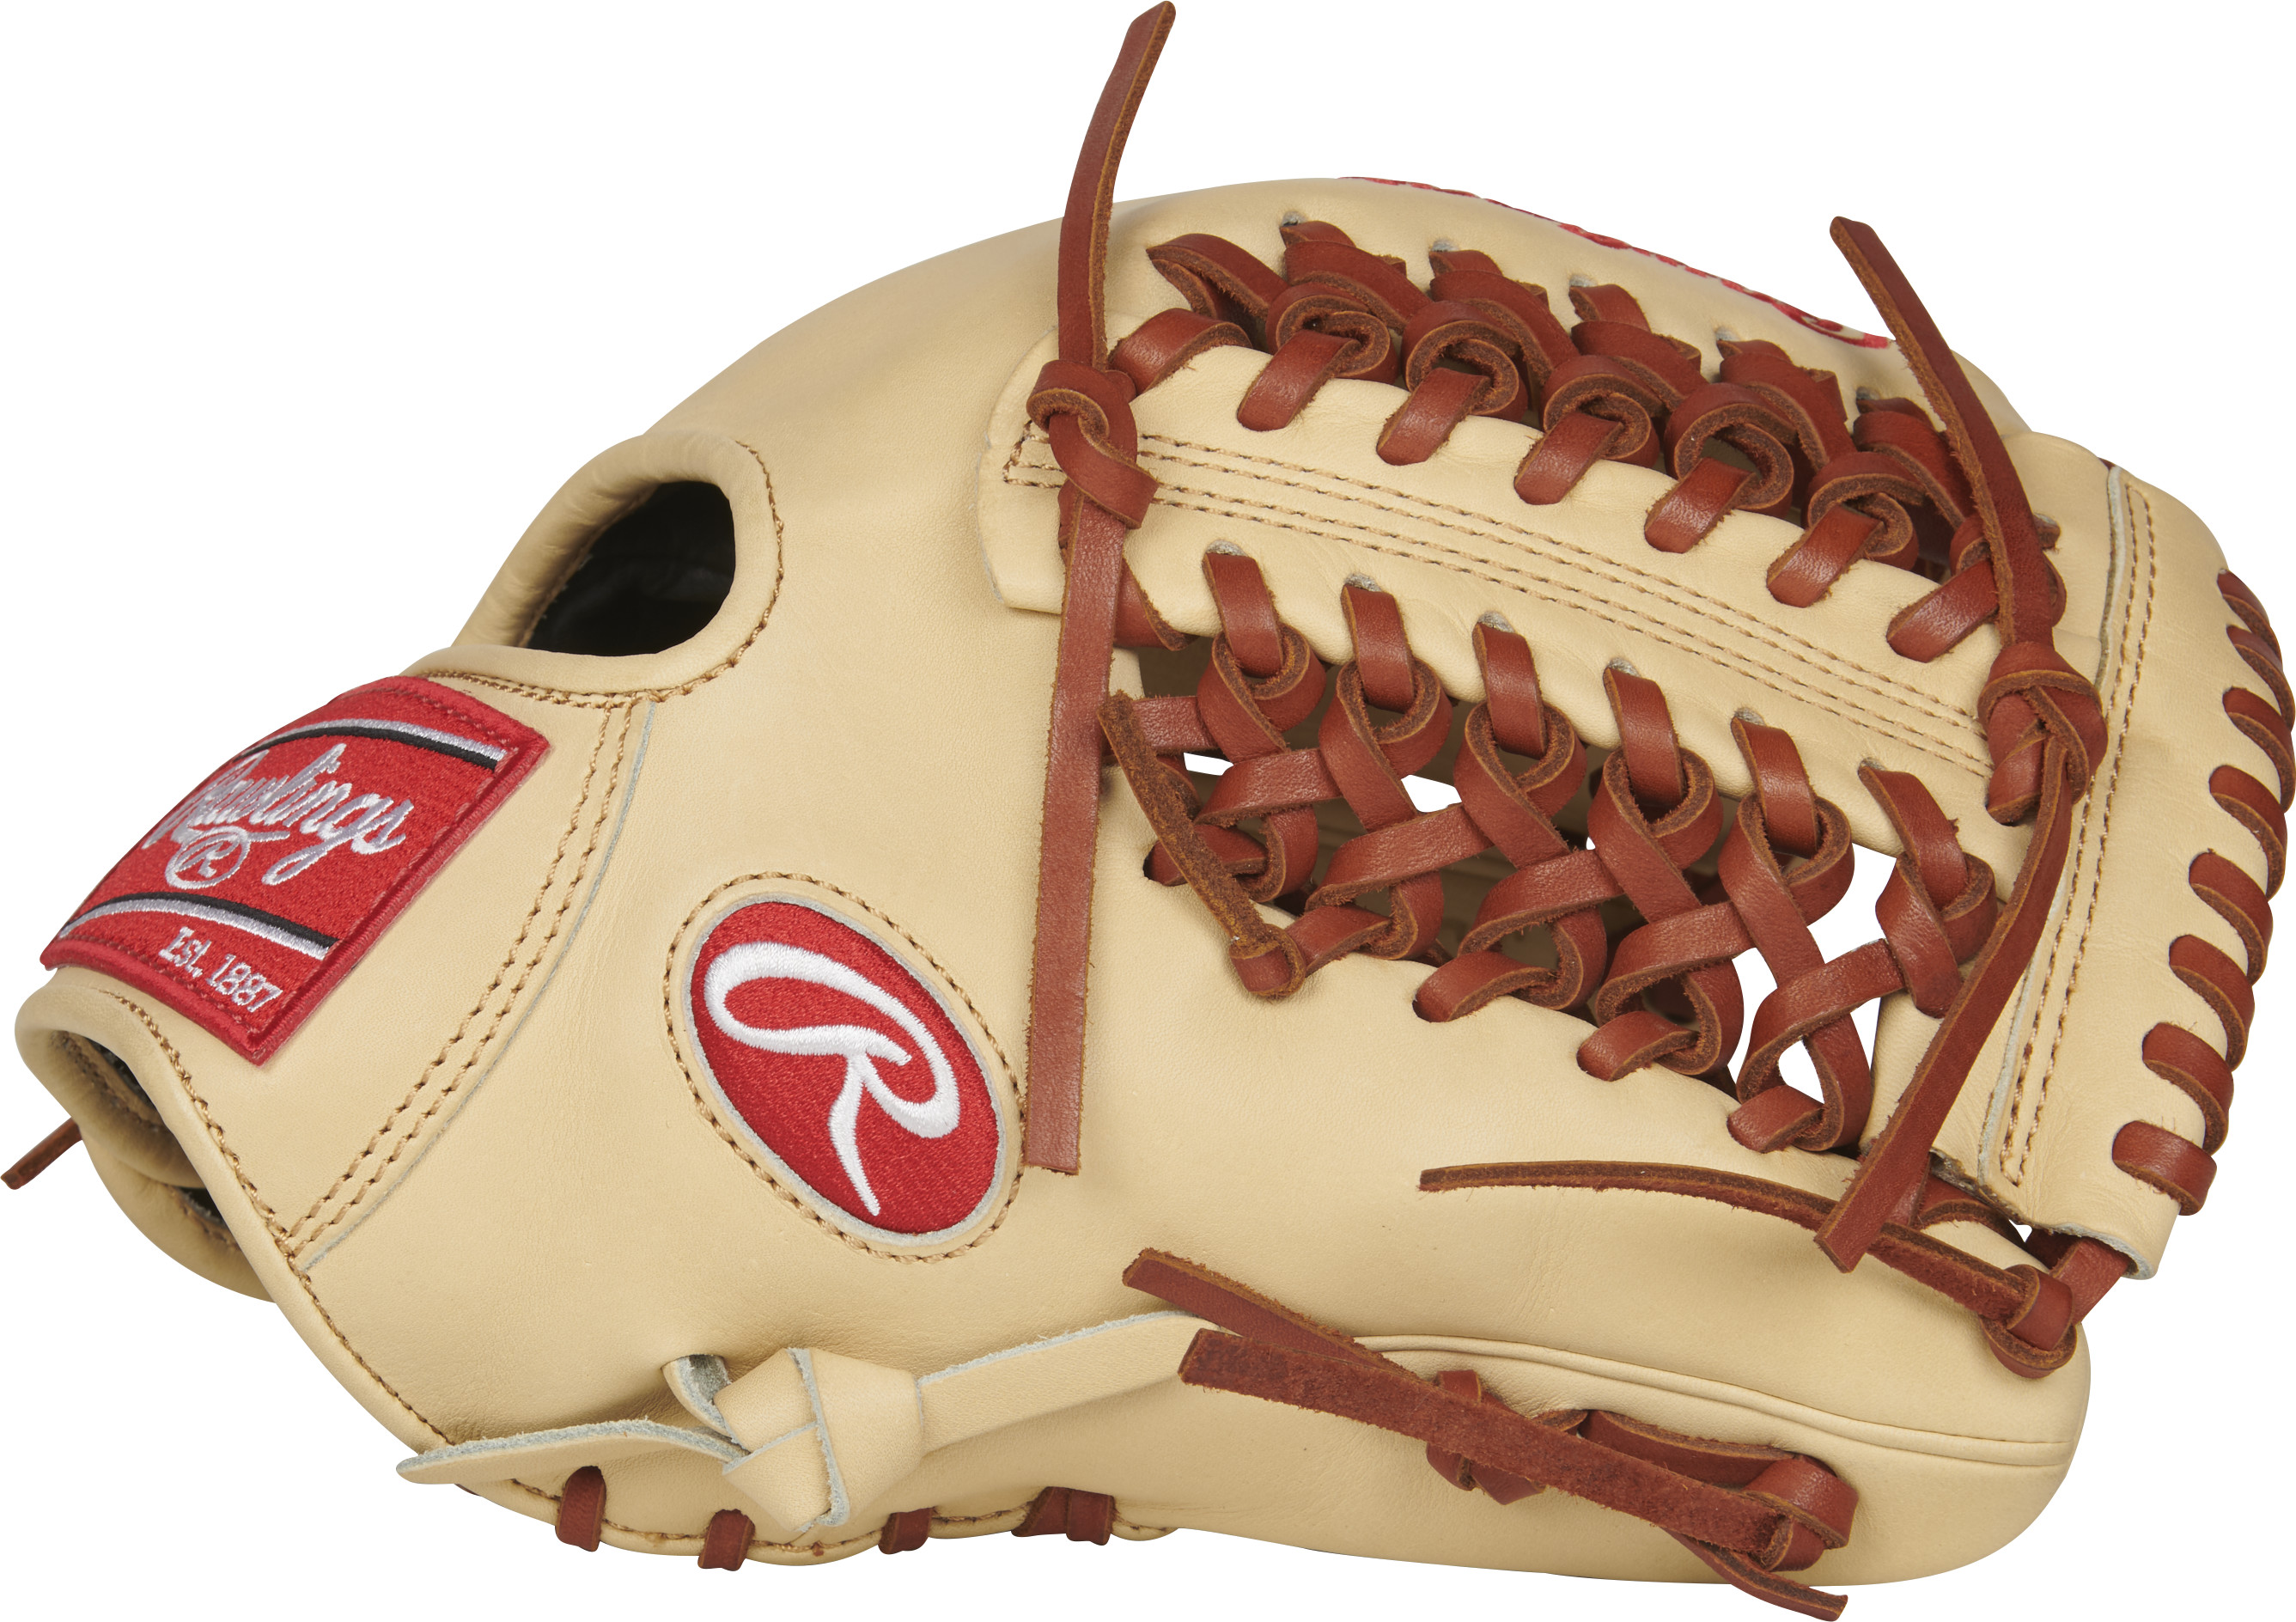 http://www.bestbatdeals.com/images/rawlingsgloves/PRO205-4CT-3.jpg